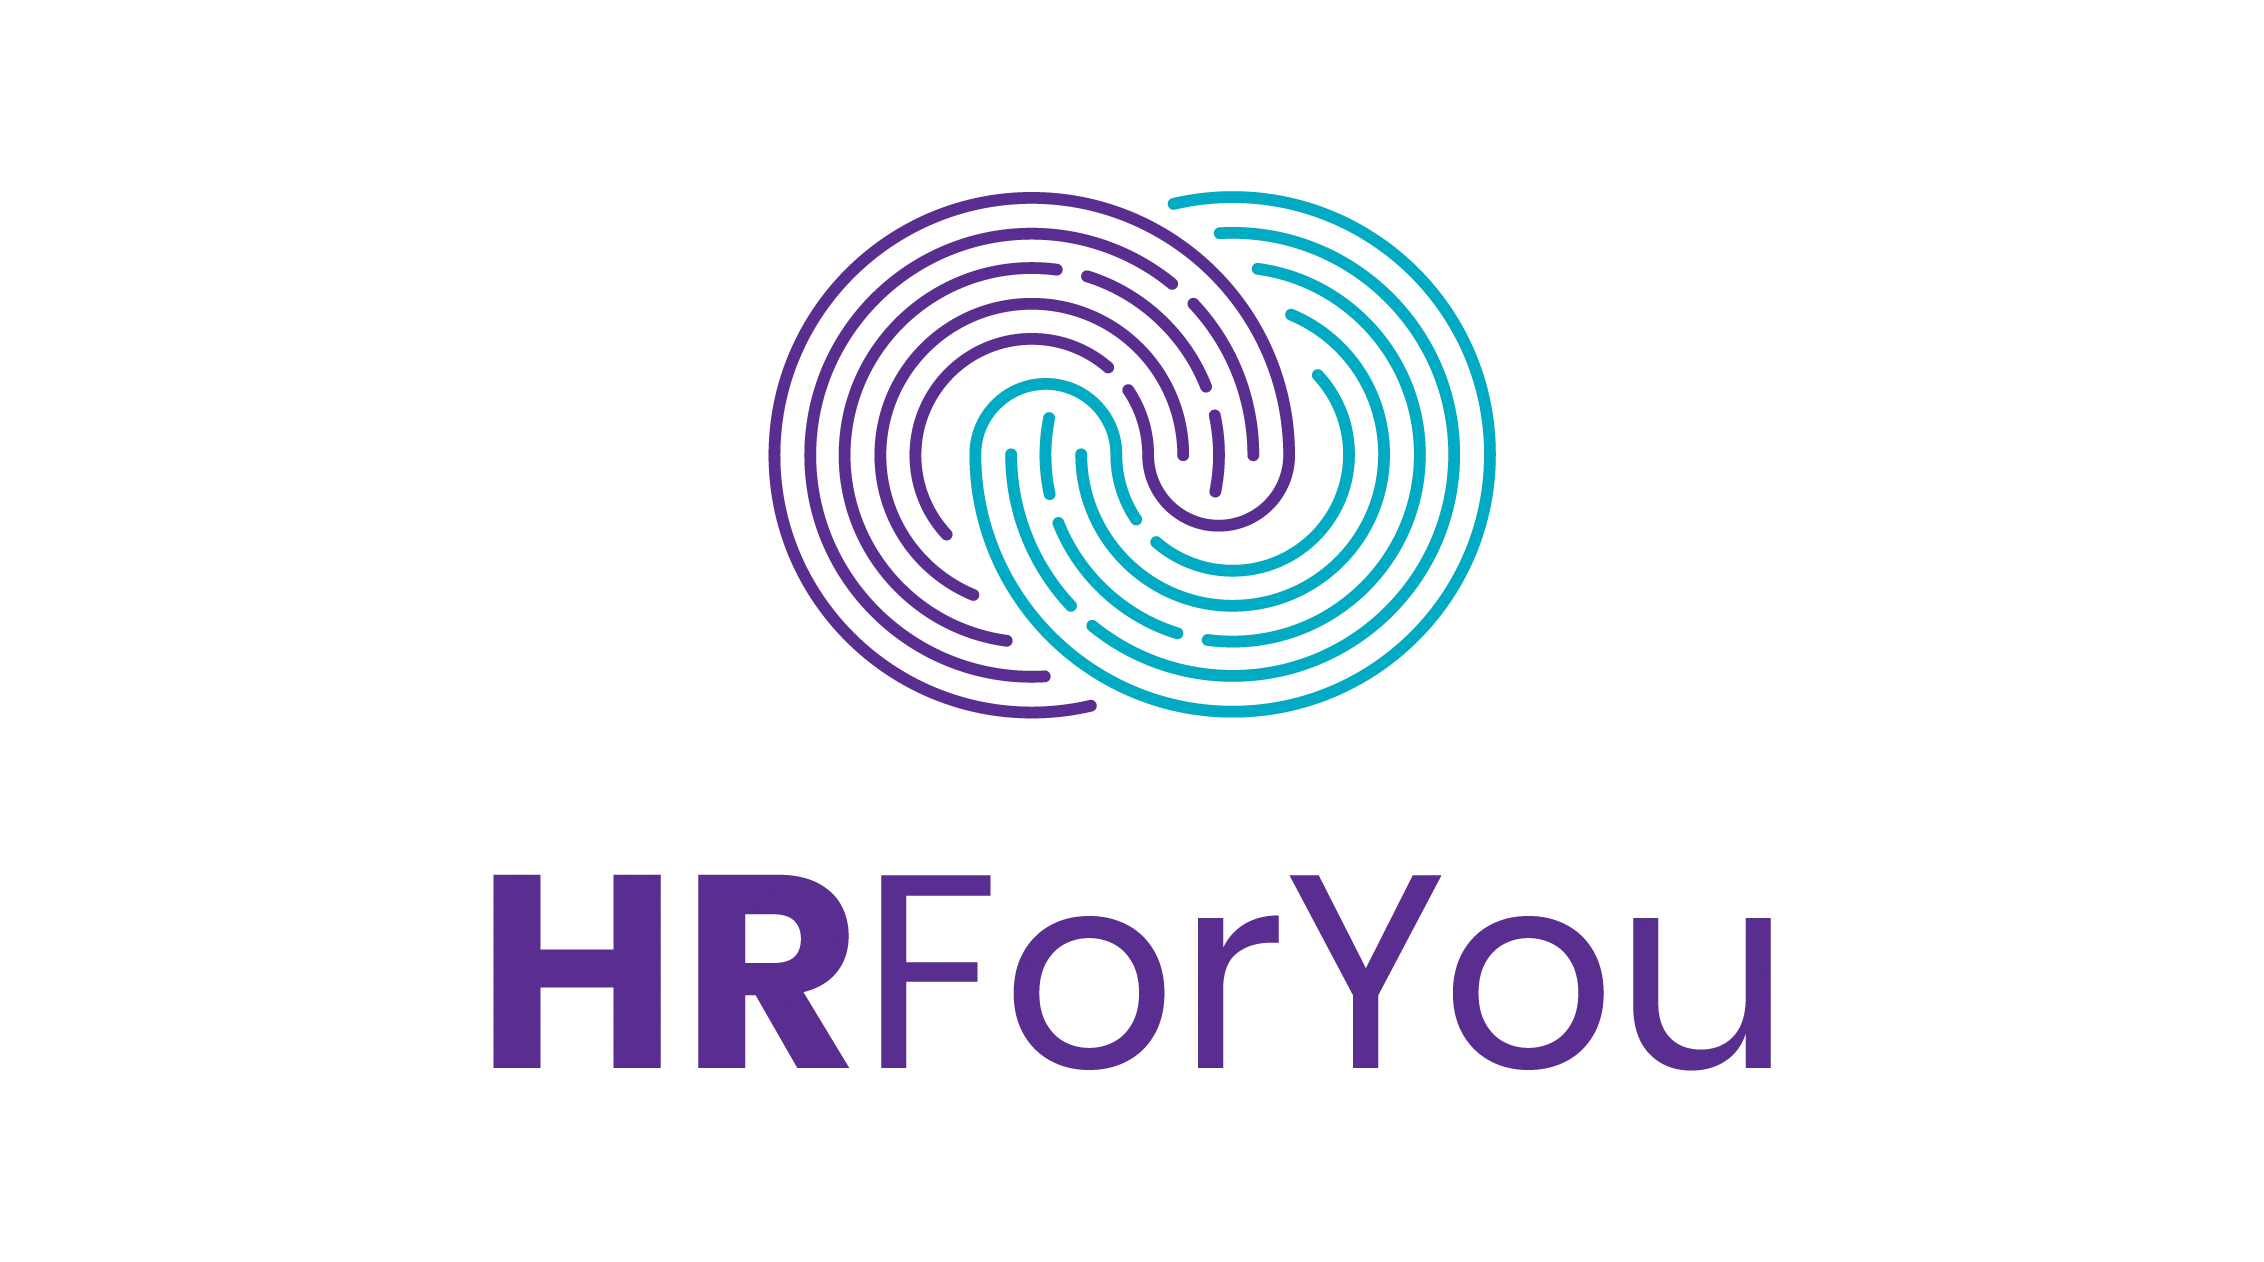 Friendly supportive team, HR For You, HR Software, Your Online Human Resources Department.